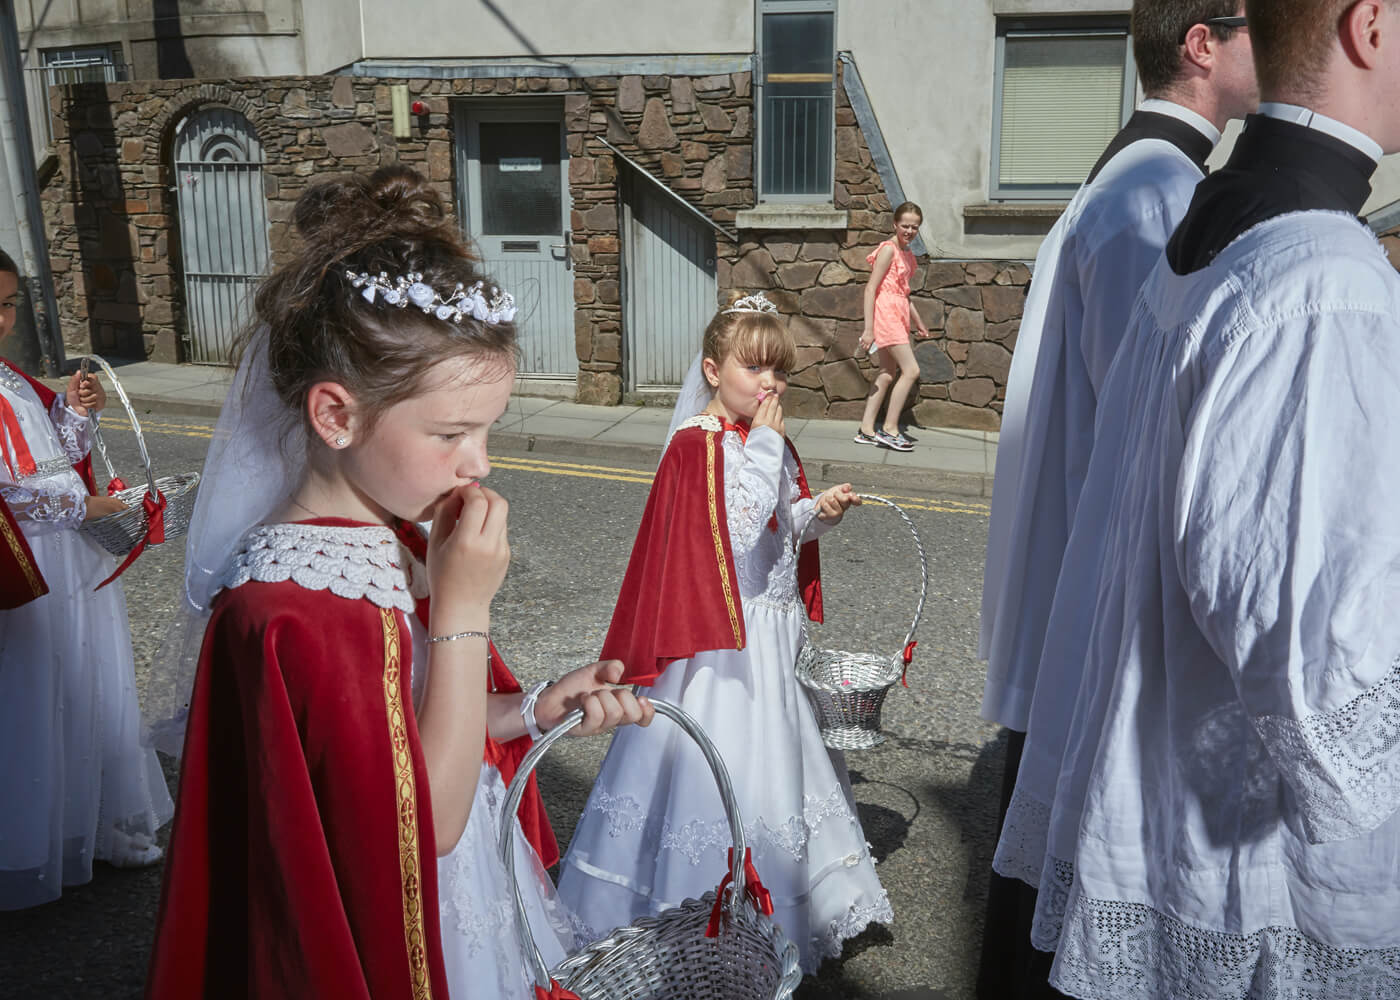 Brides of Christ, Cork.  Eight year old girls dressed as 'Brides of Christ' kiss rose petals that represent Christ's blood before scattering them on the floor. First communion is still a rite-of-passage for girls in Ireland.